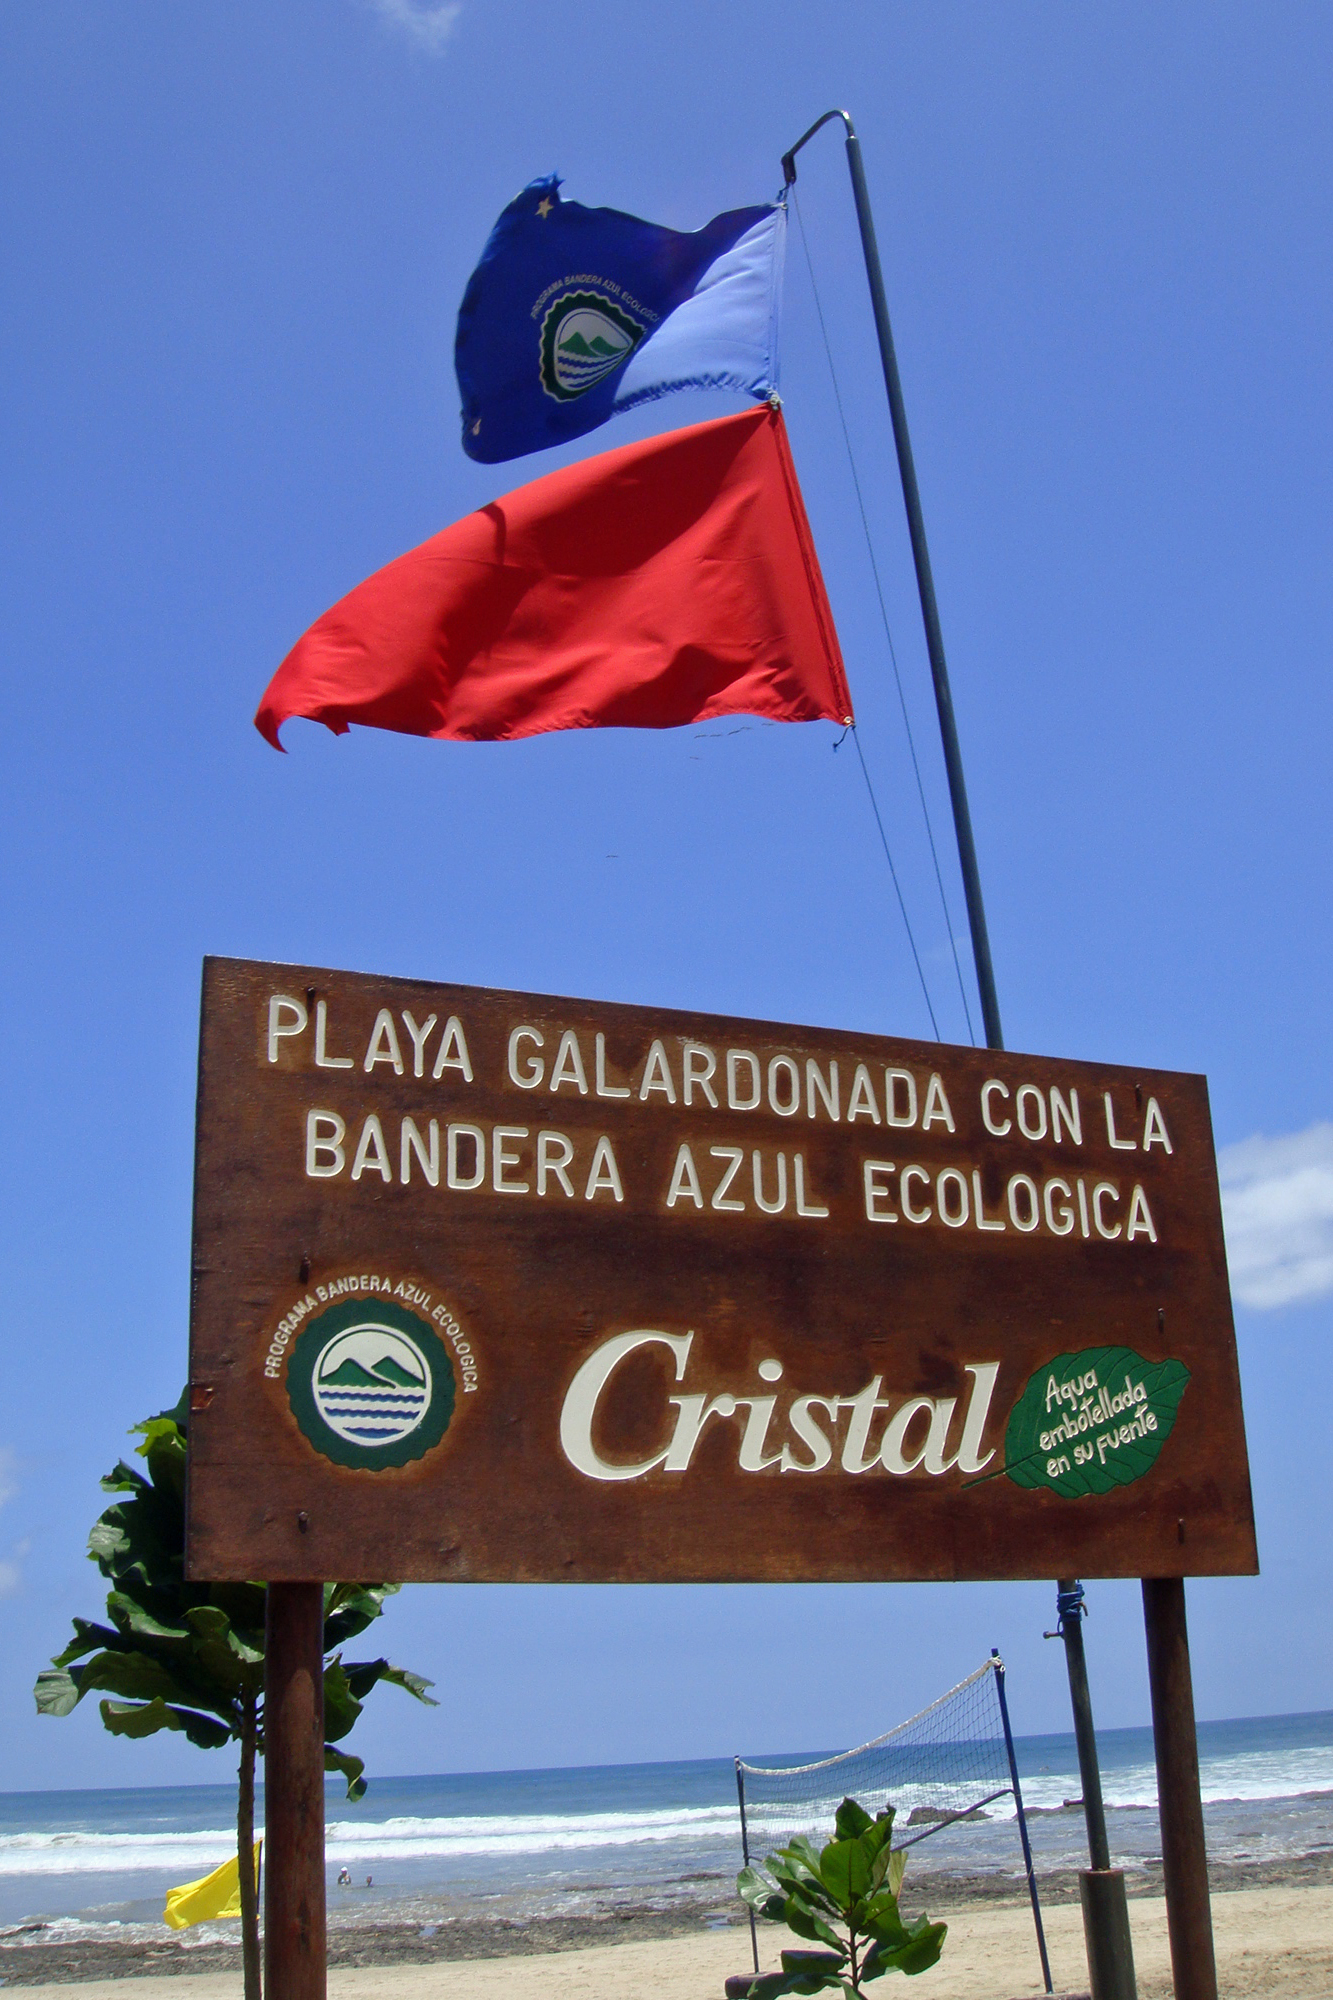 Bandera Azul Ecologica (Ecological Blue Flag)